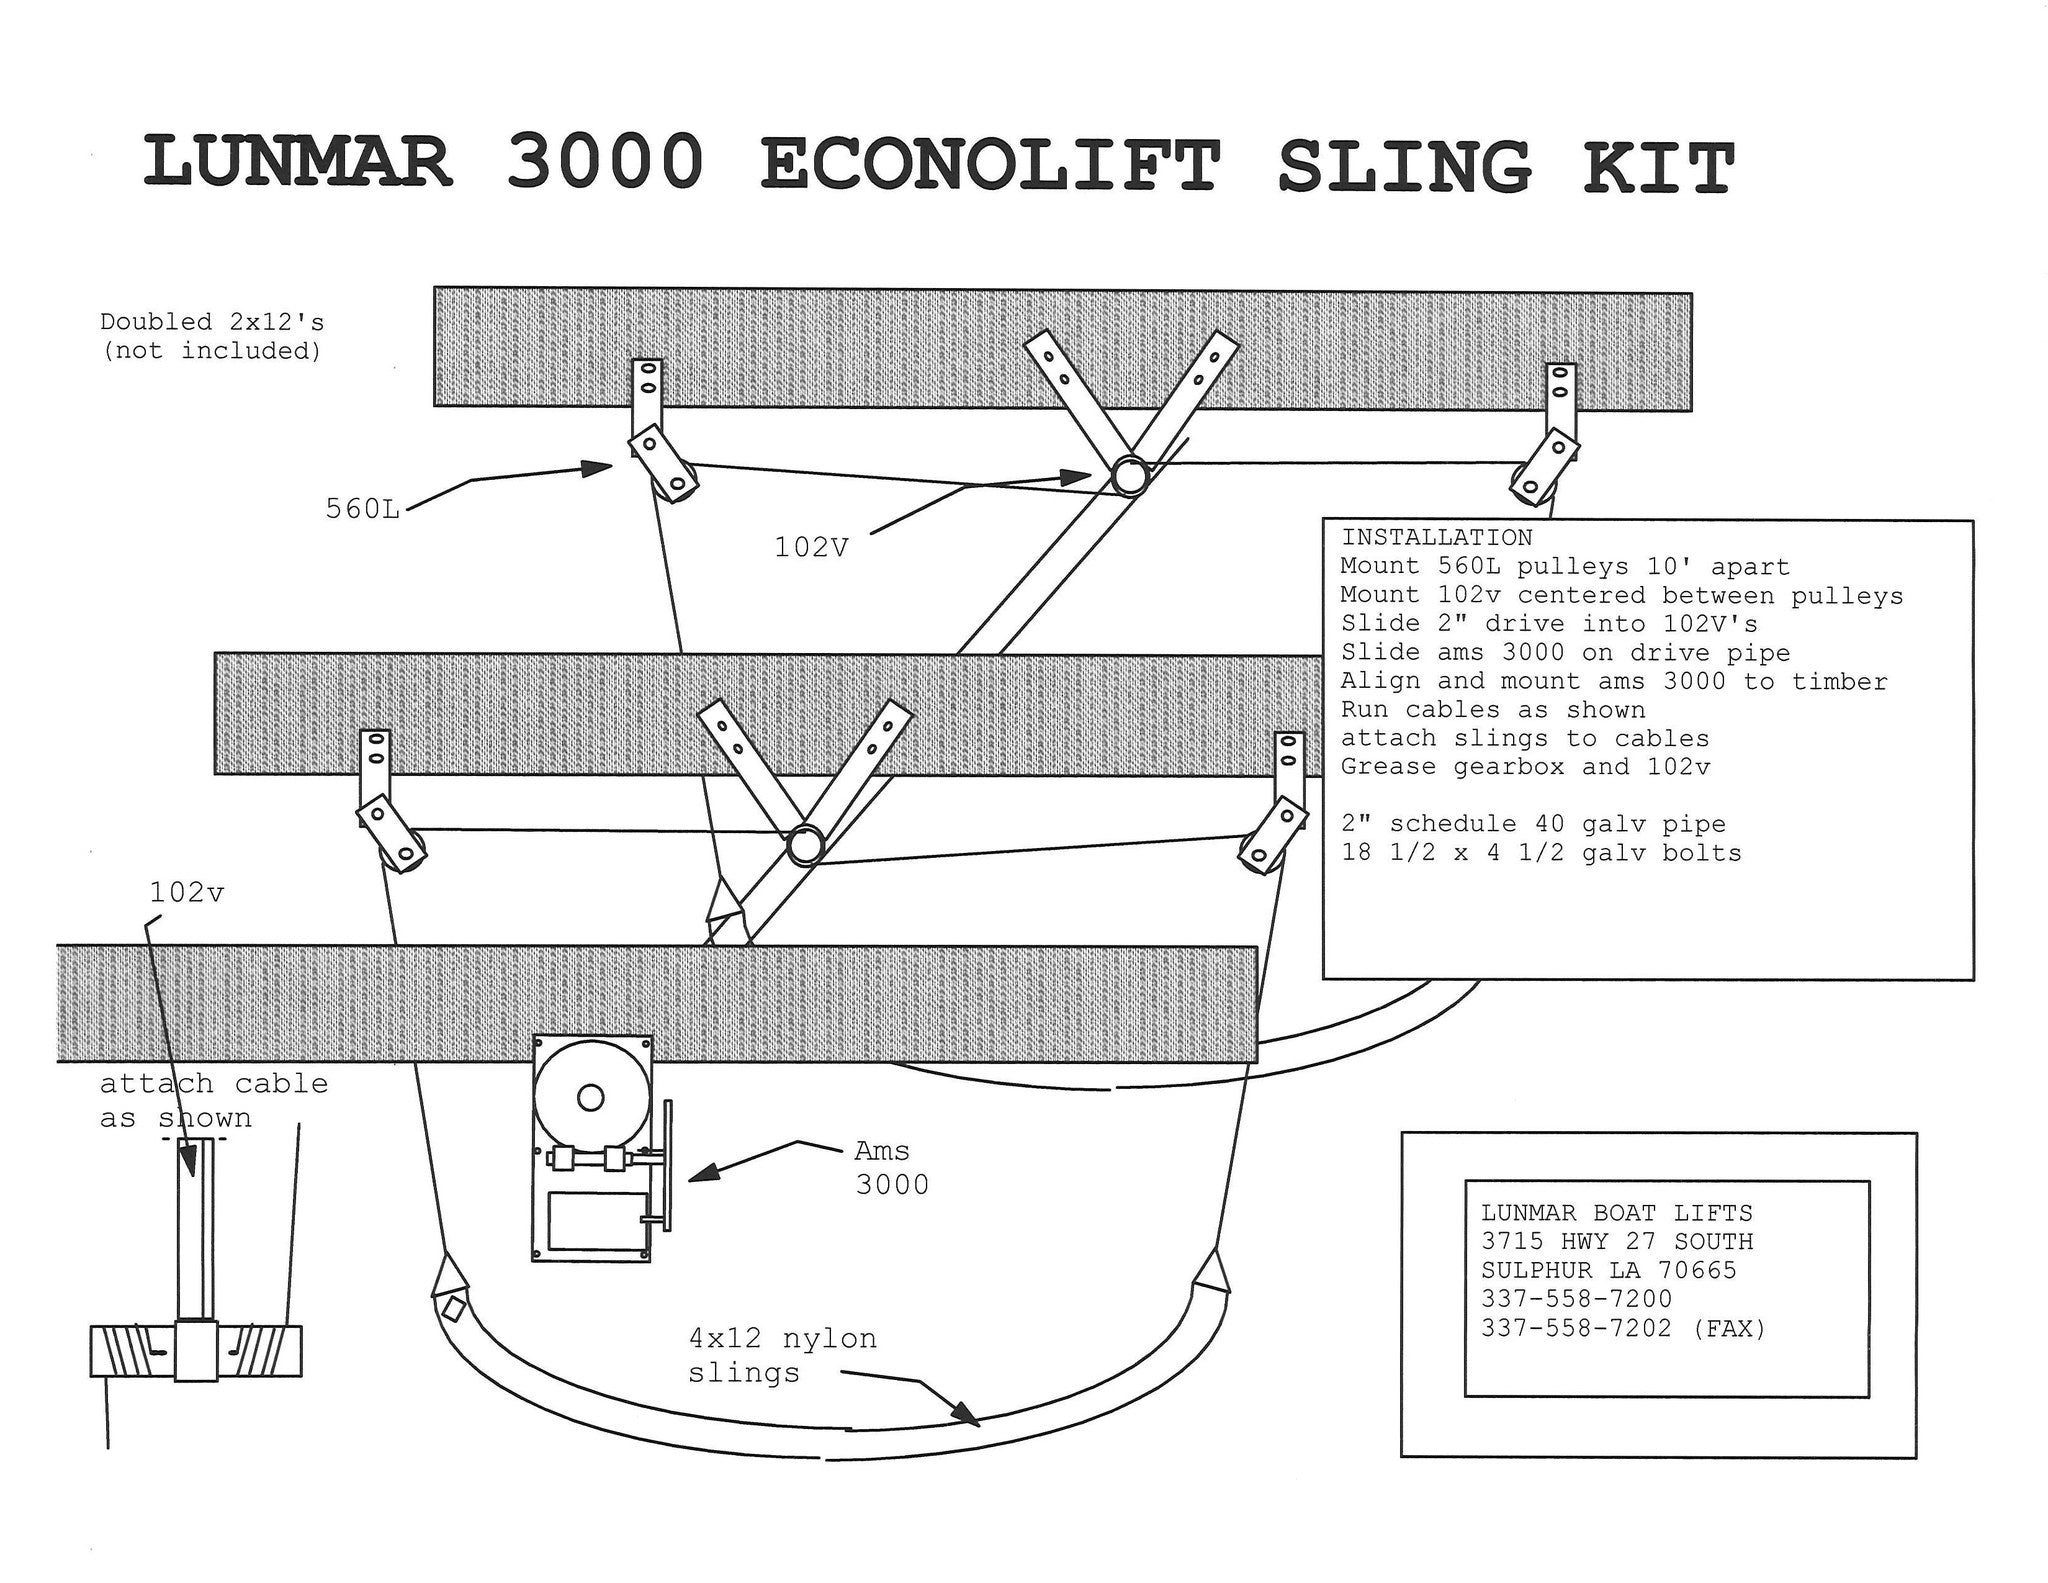 3000_Econo_Installation_Diagram boat lift wiring dolgular com boat lift wiring diagram at bakdesigns.co